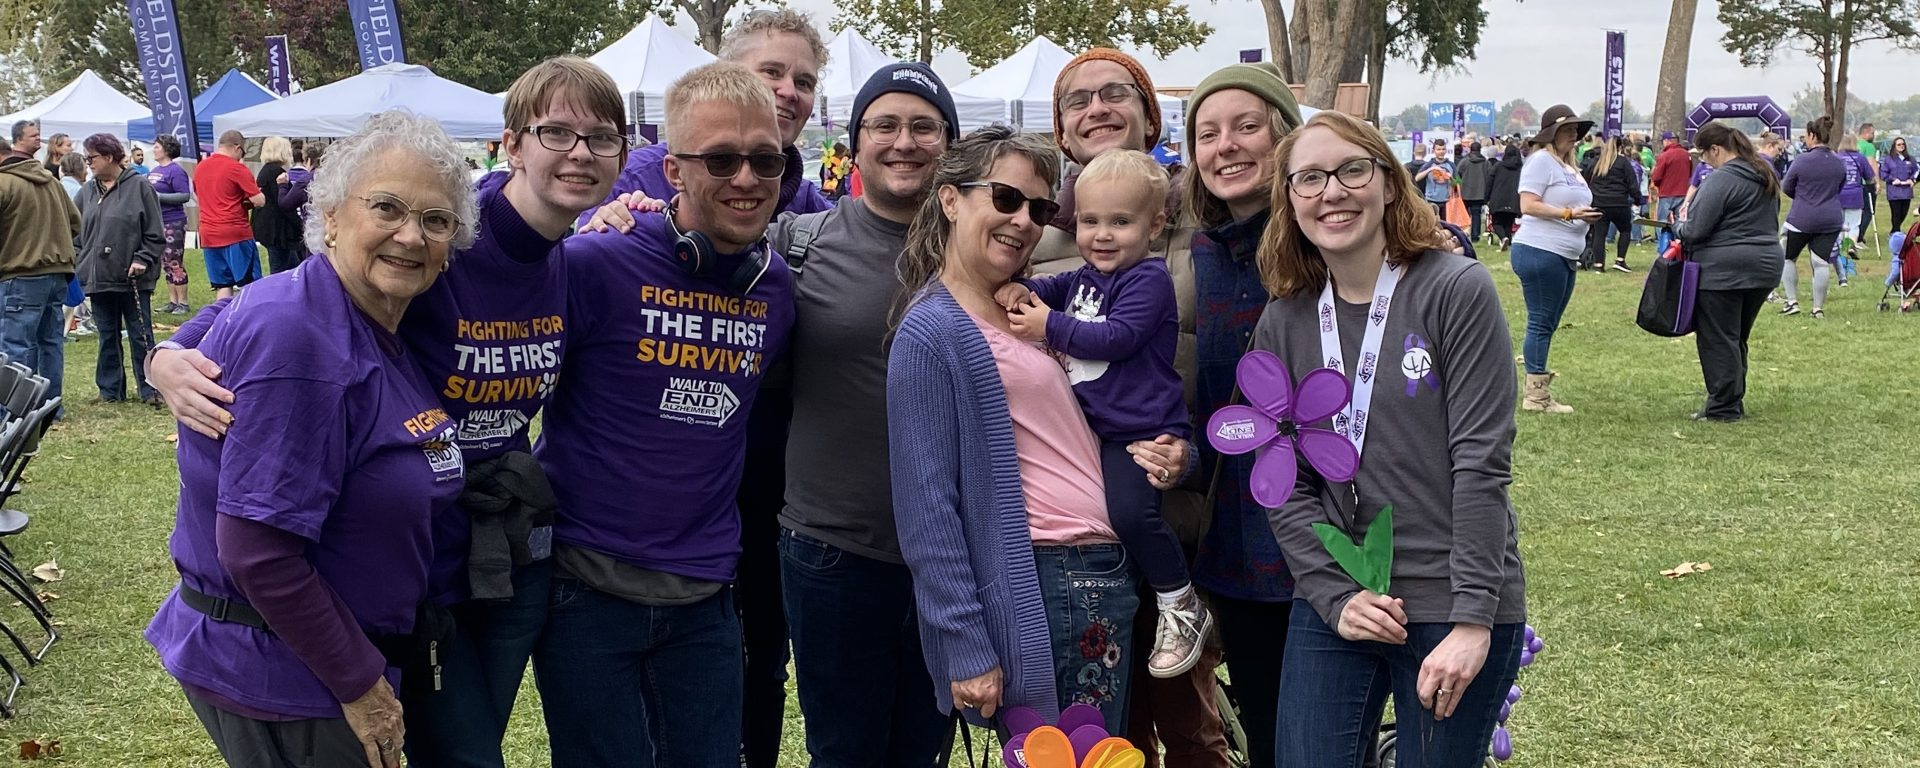 Jenni and her family at the Walk to End Alzheimers